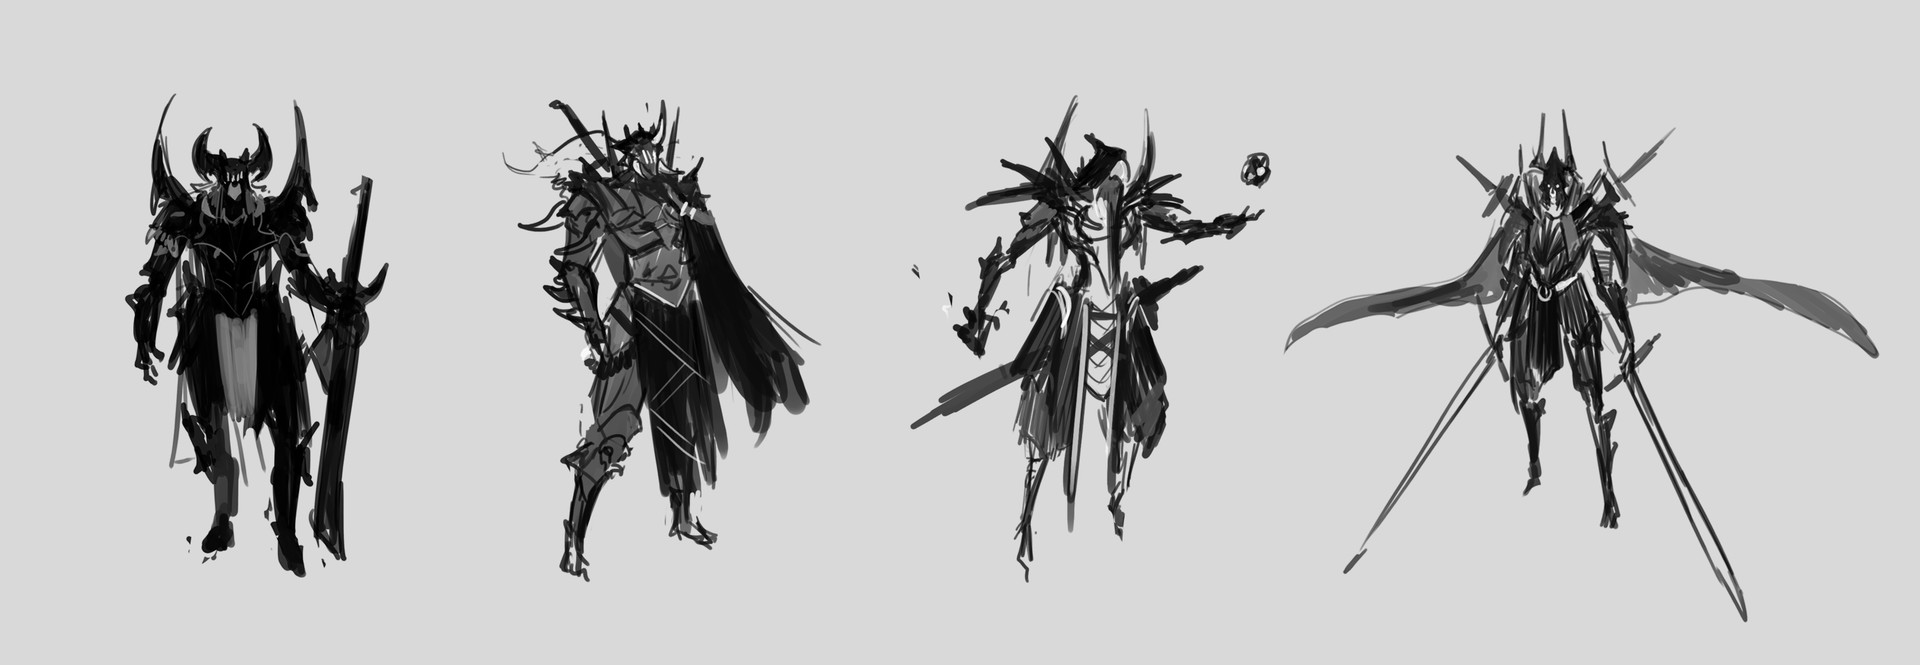 Jeff chen deathknight thumbs2